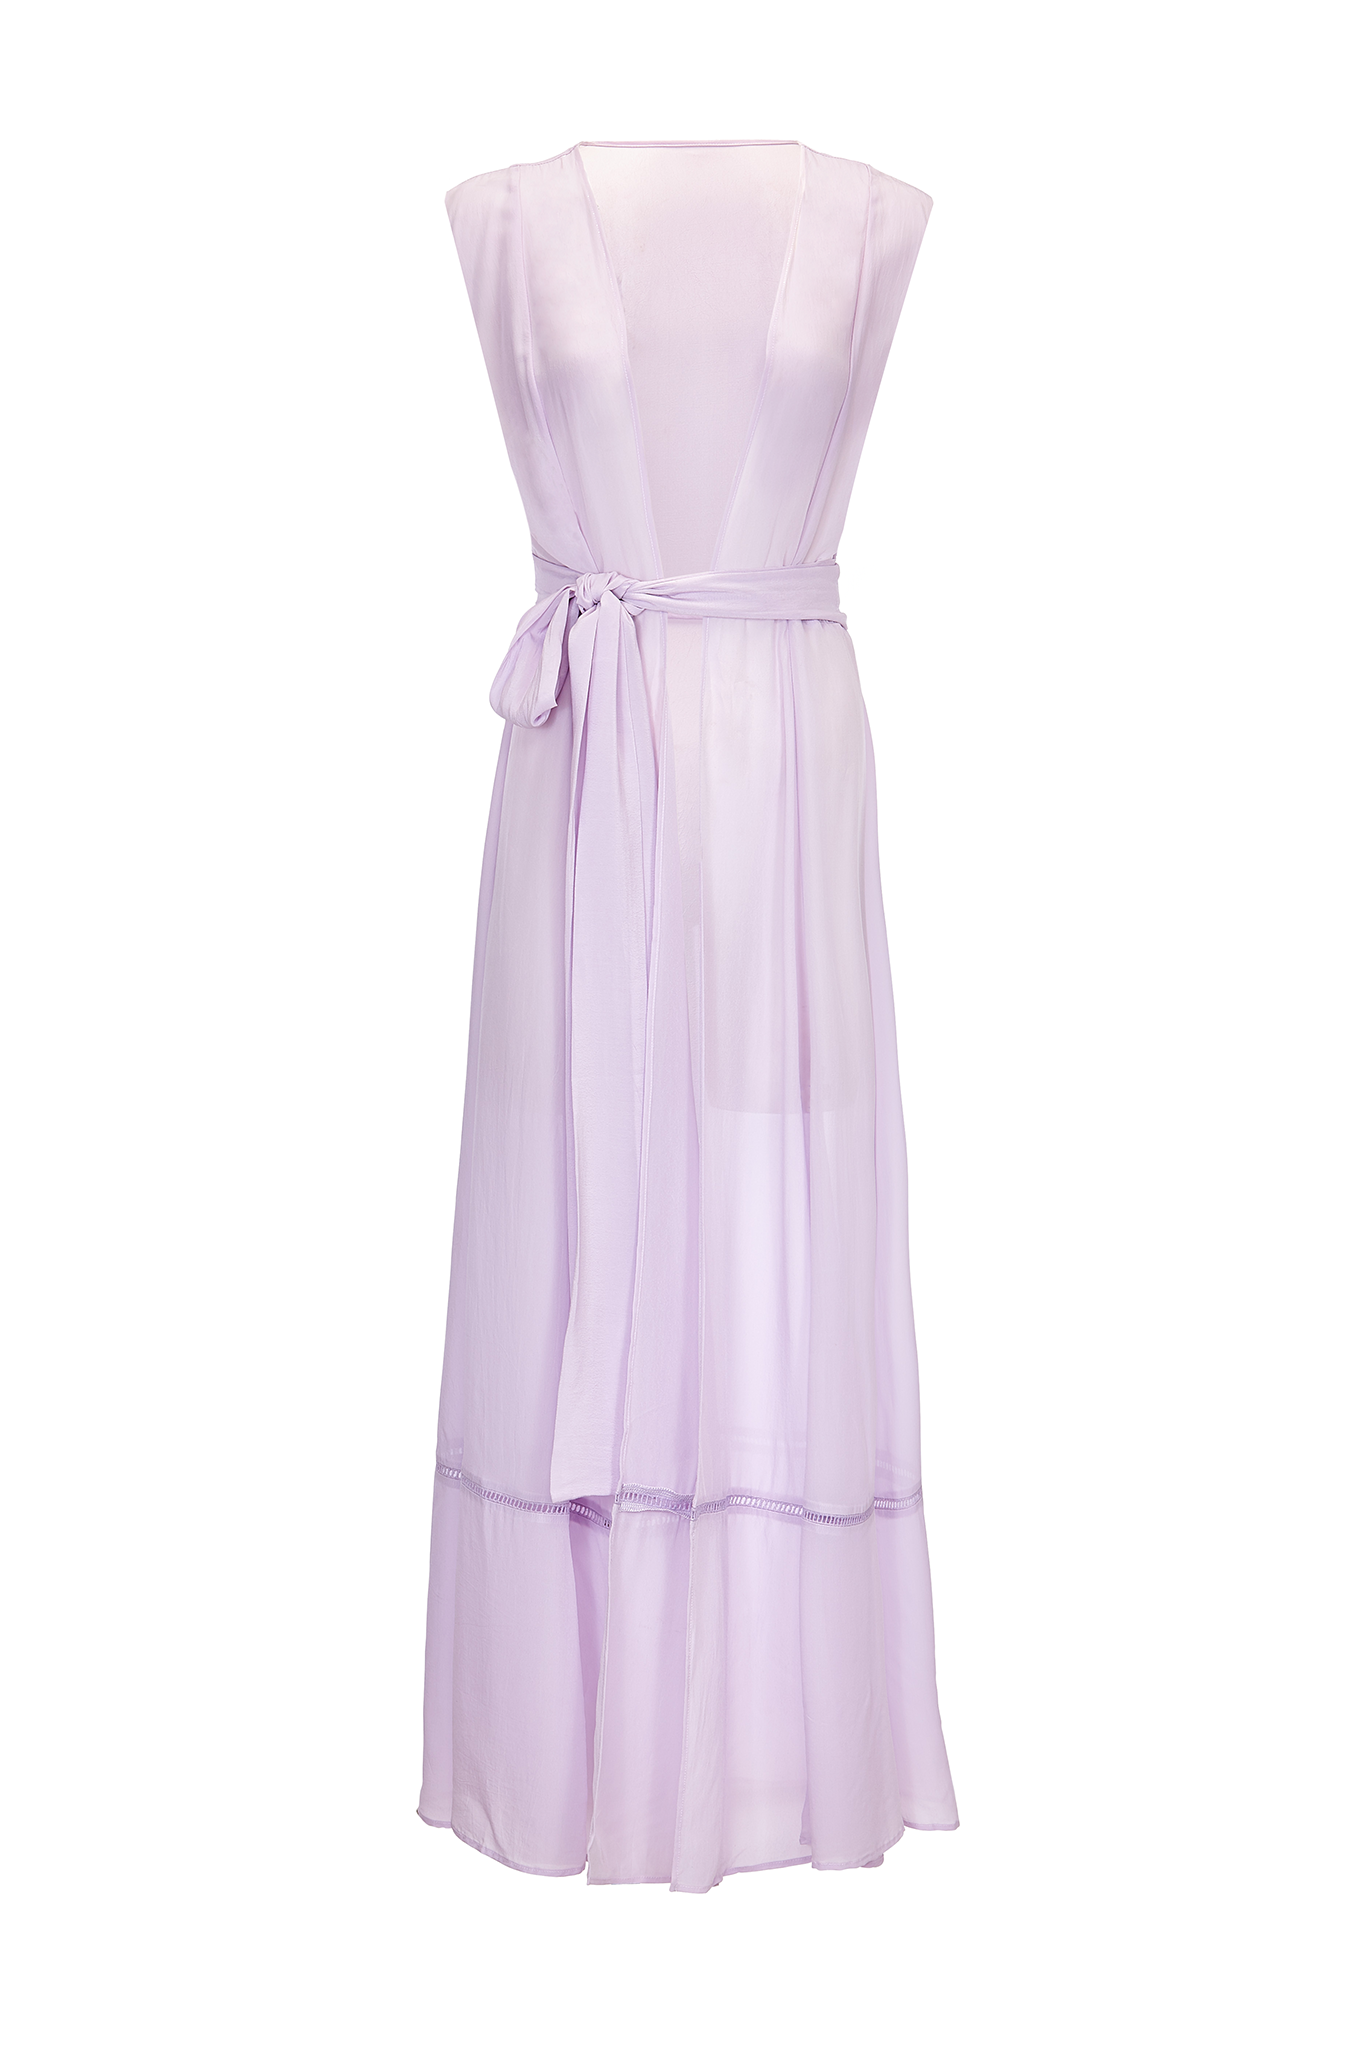 Audrey sleeveless maxi cover-up in lavender - product shot front